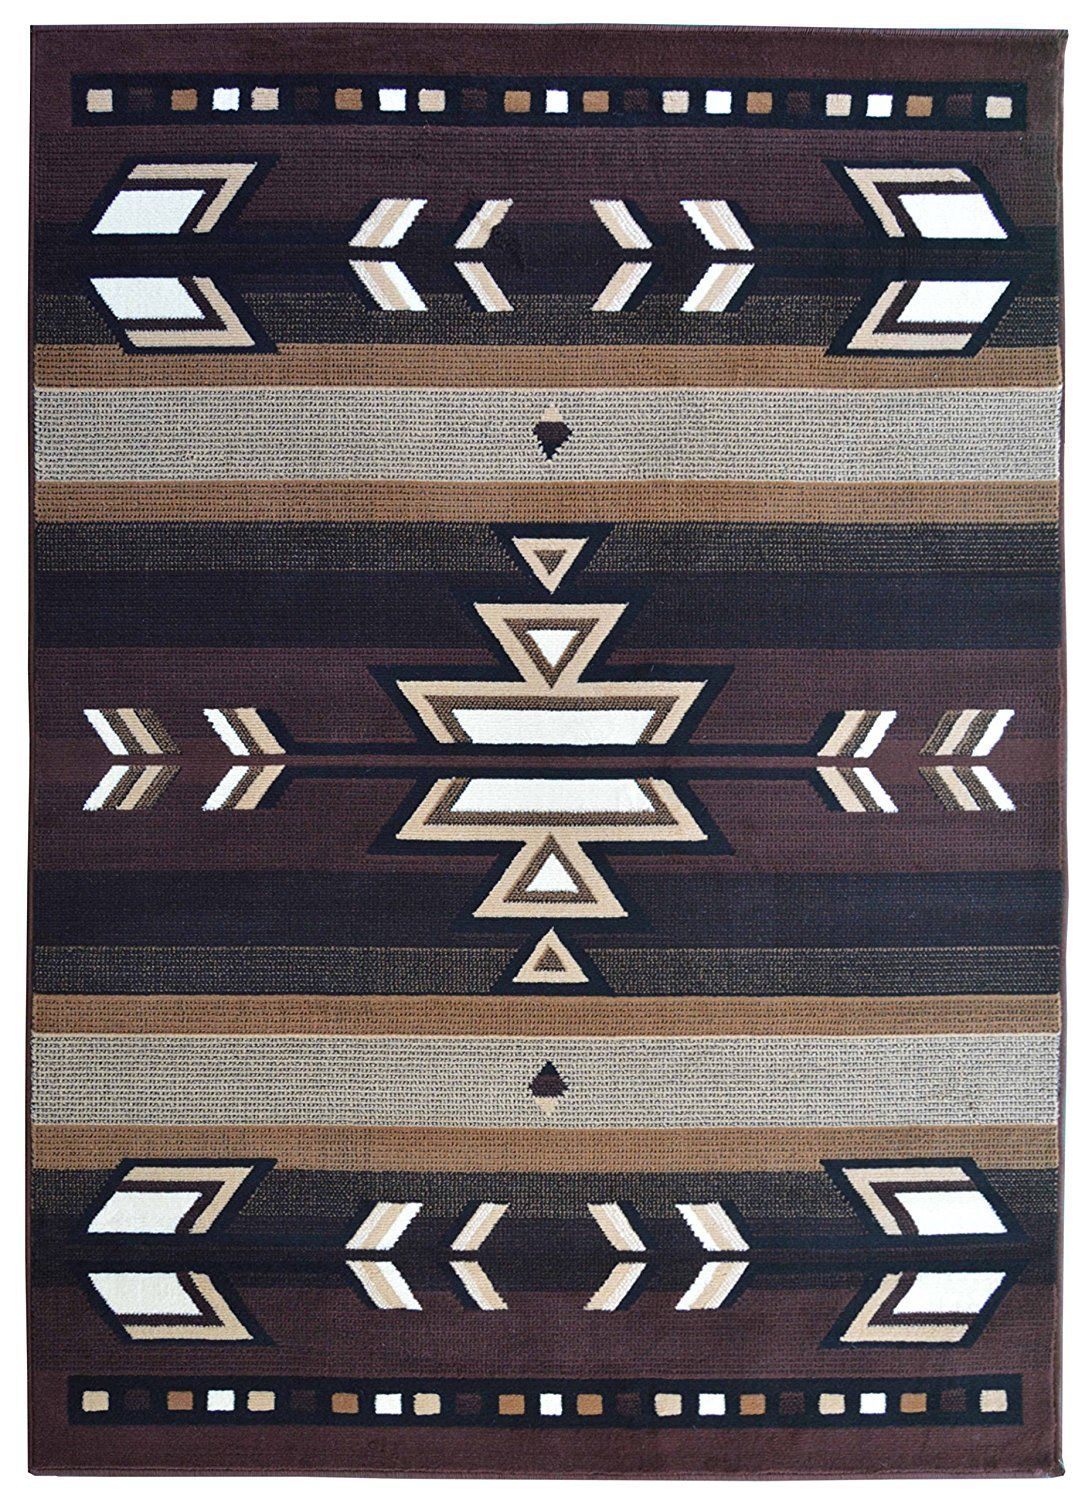 Rugs 4 Less Collection Southwest Native American Indian Area Rug Design R4l Sw1 In Brown Chocolate 5 X7 Want Additional Info Click On The Image